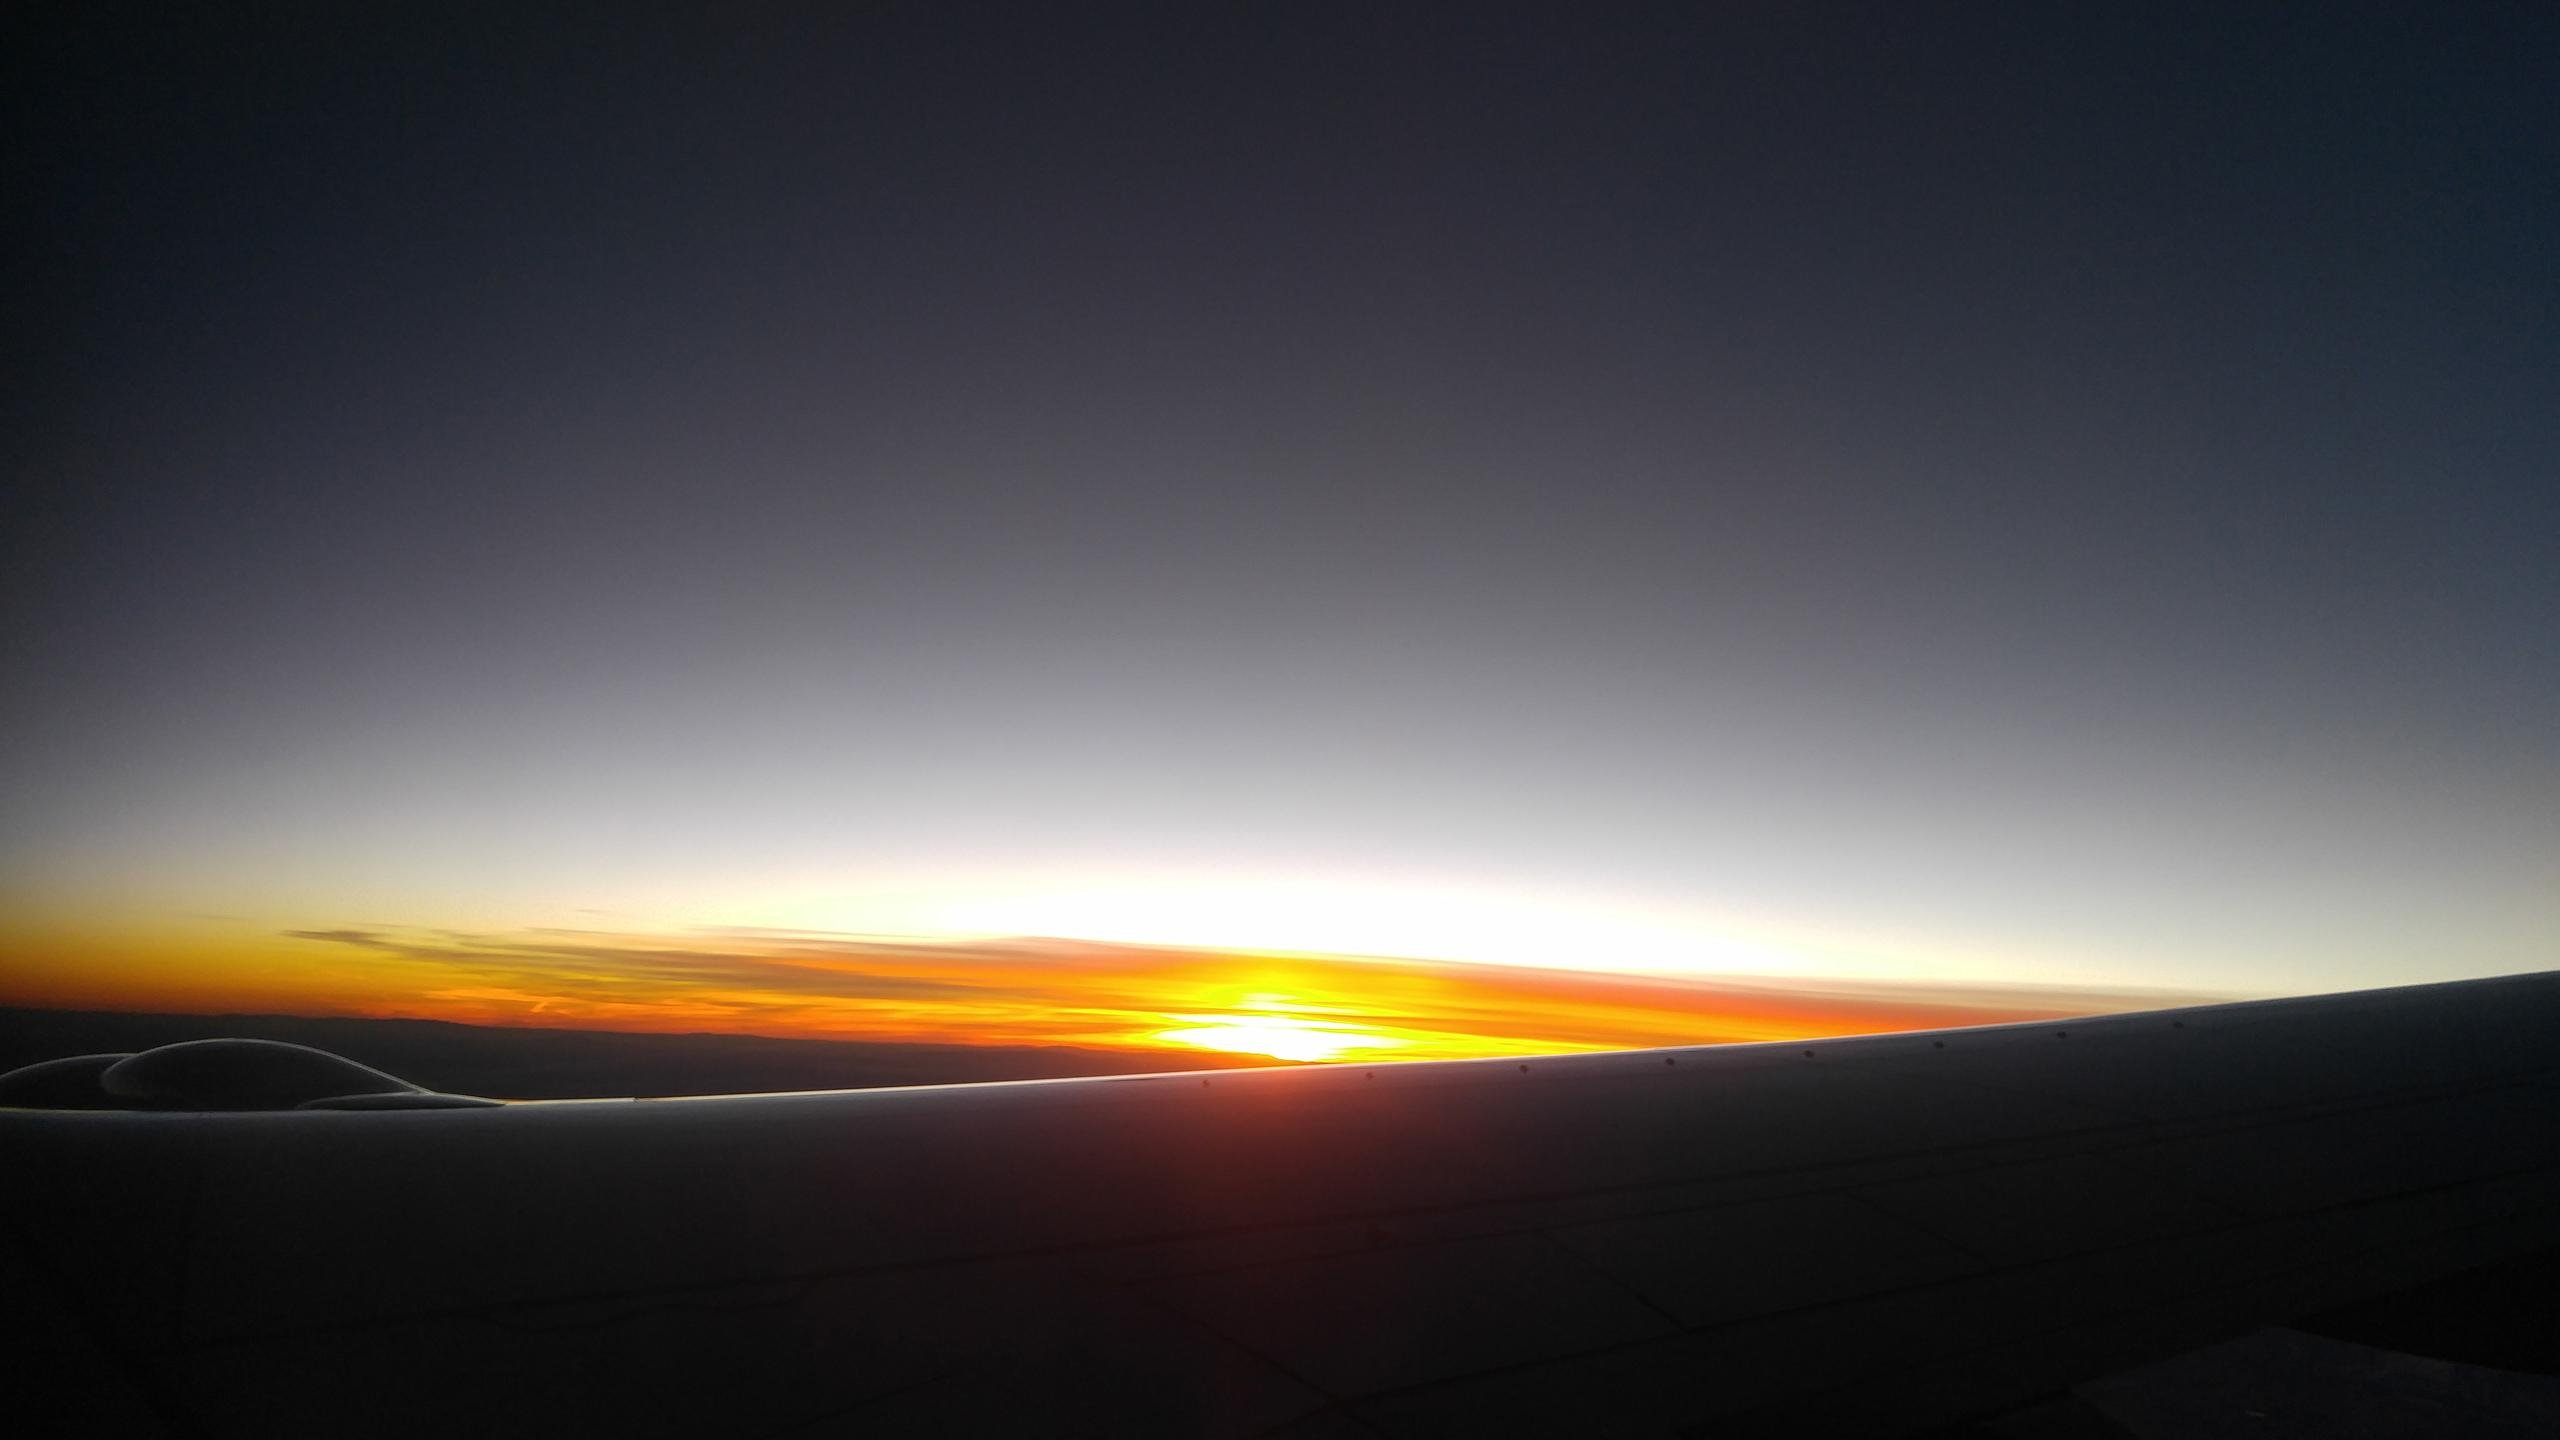 Sunrise in Flight wallpaper